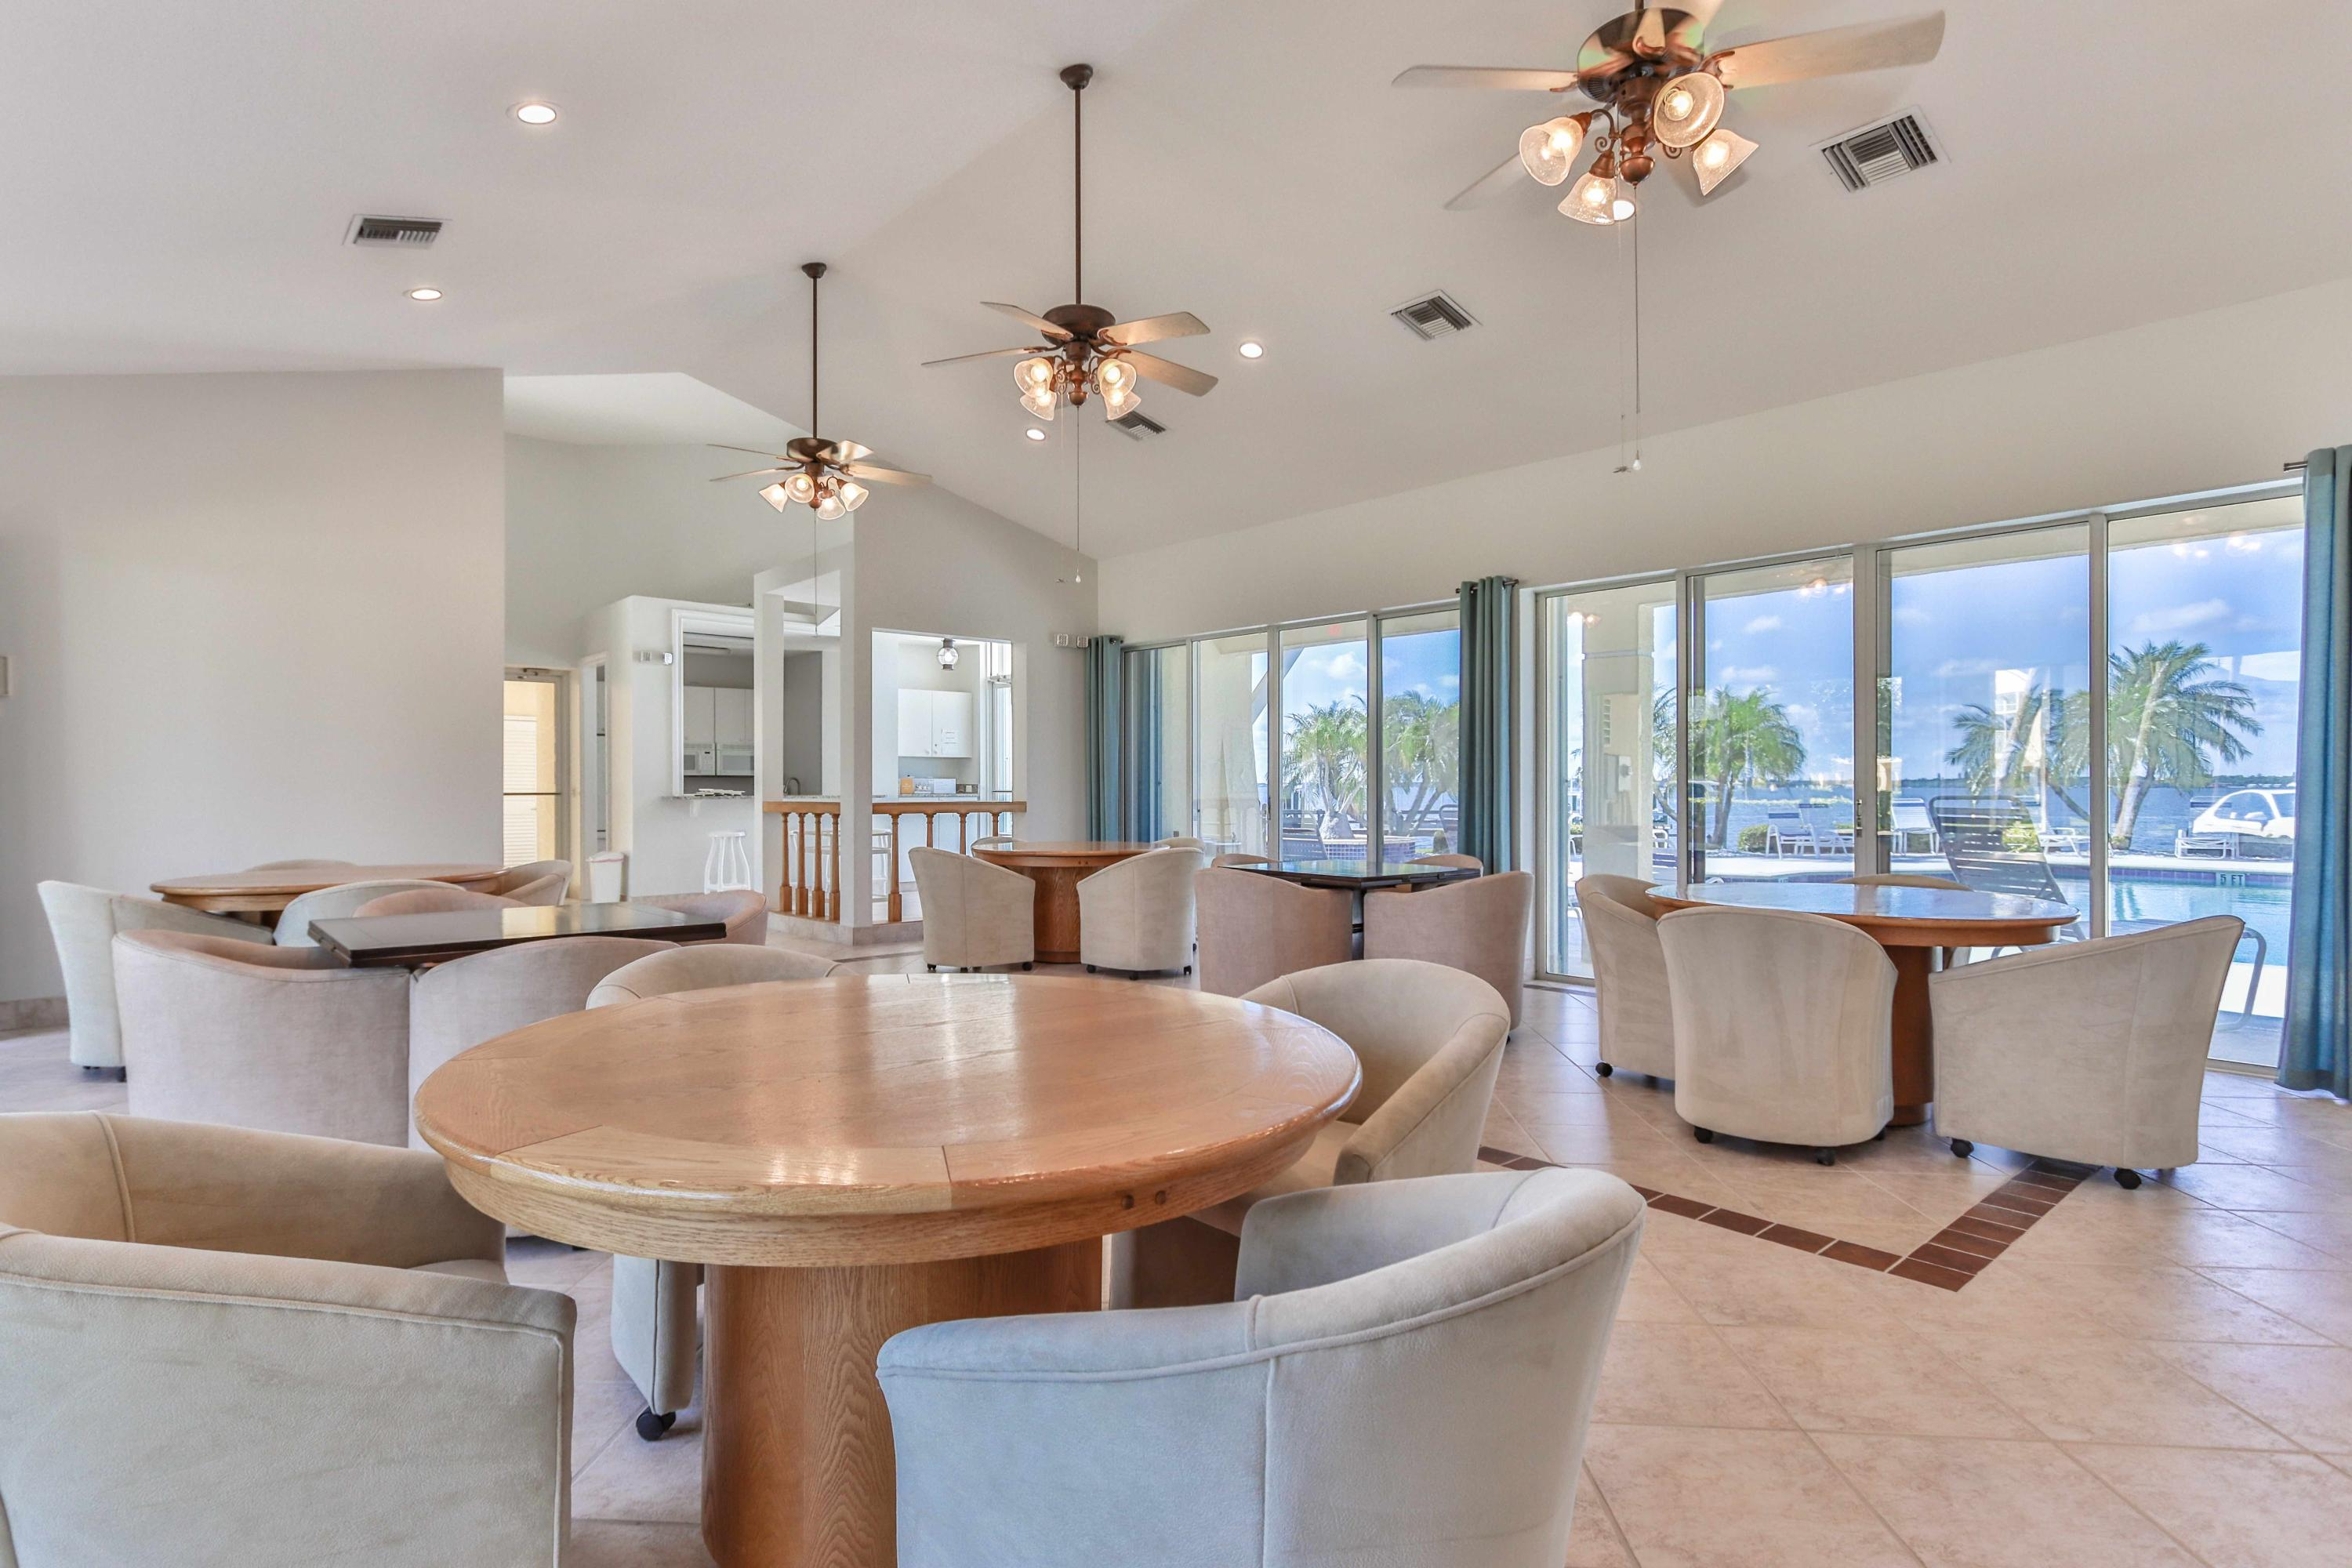 MOON RIVER HOMES FOR SALE